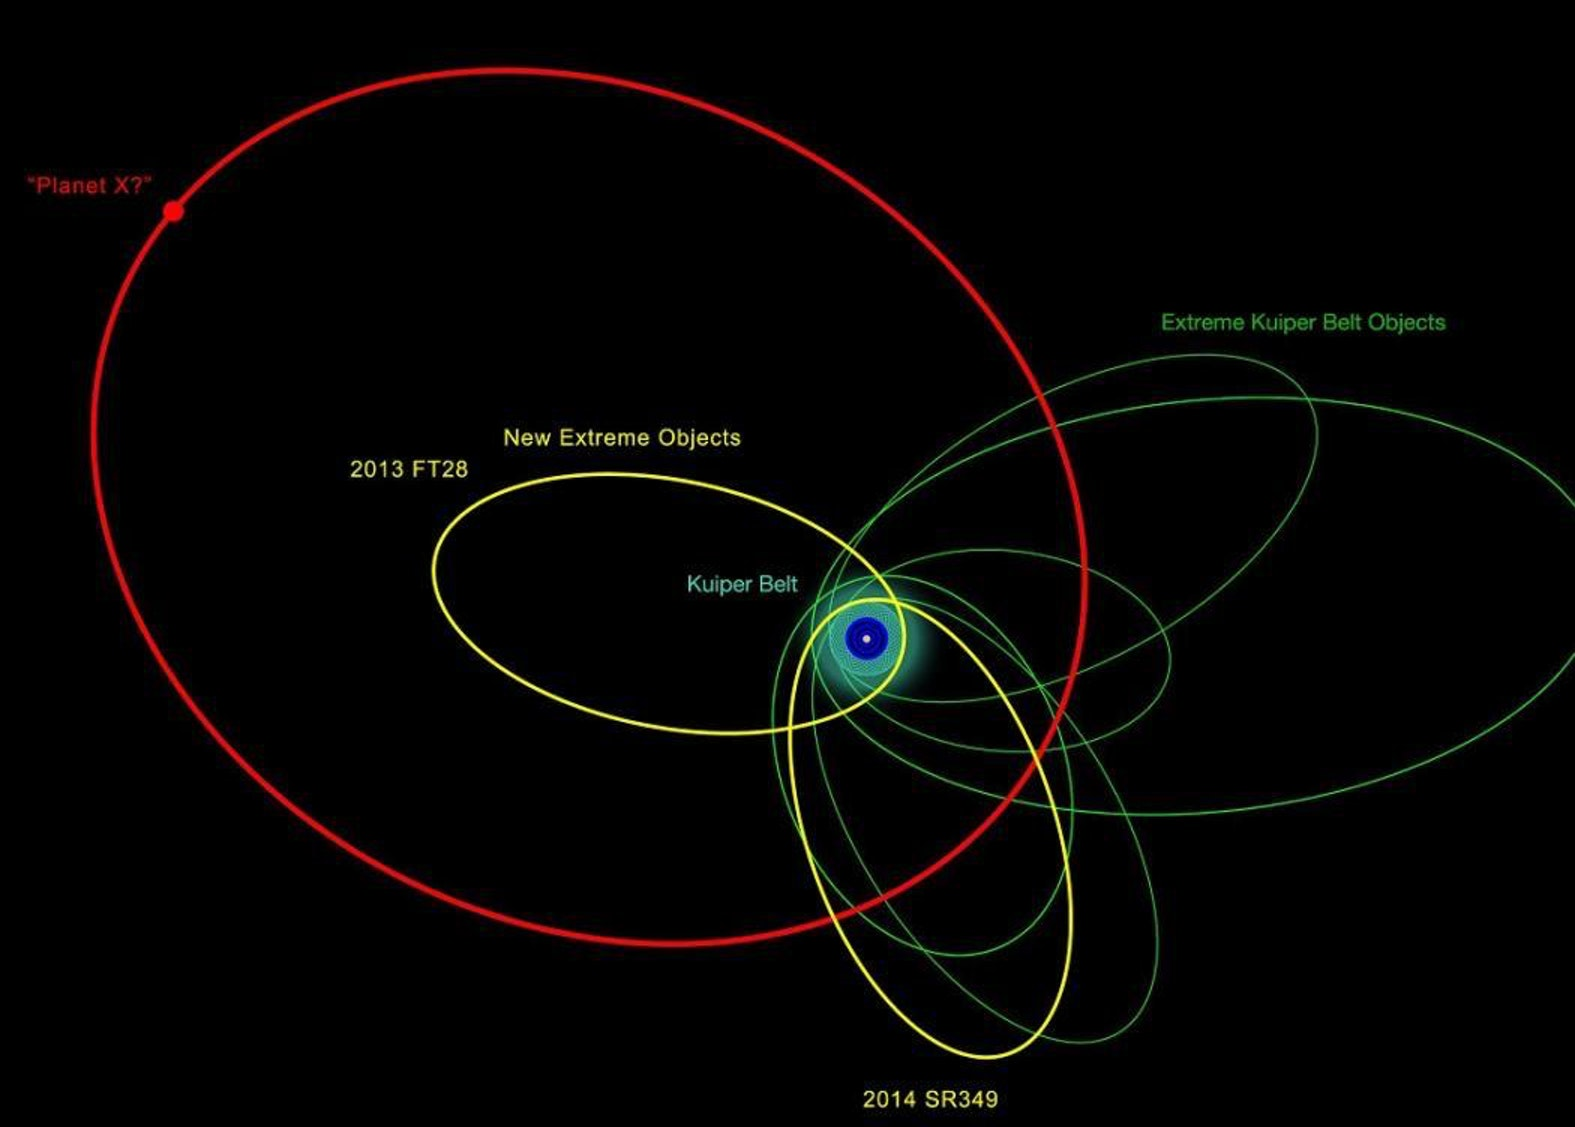 New objects in the outer edges of the solar system could help the search for Planet Nine.